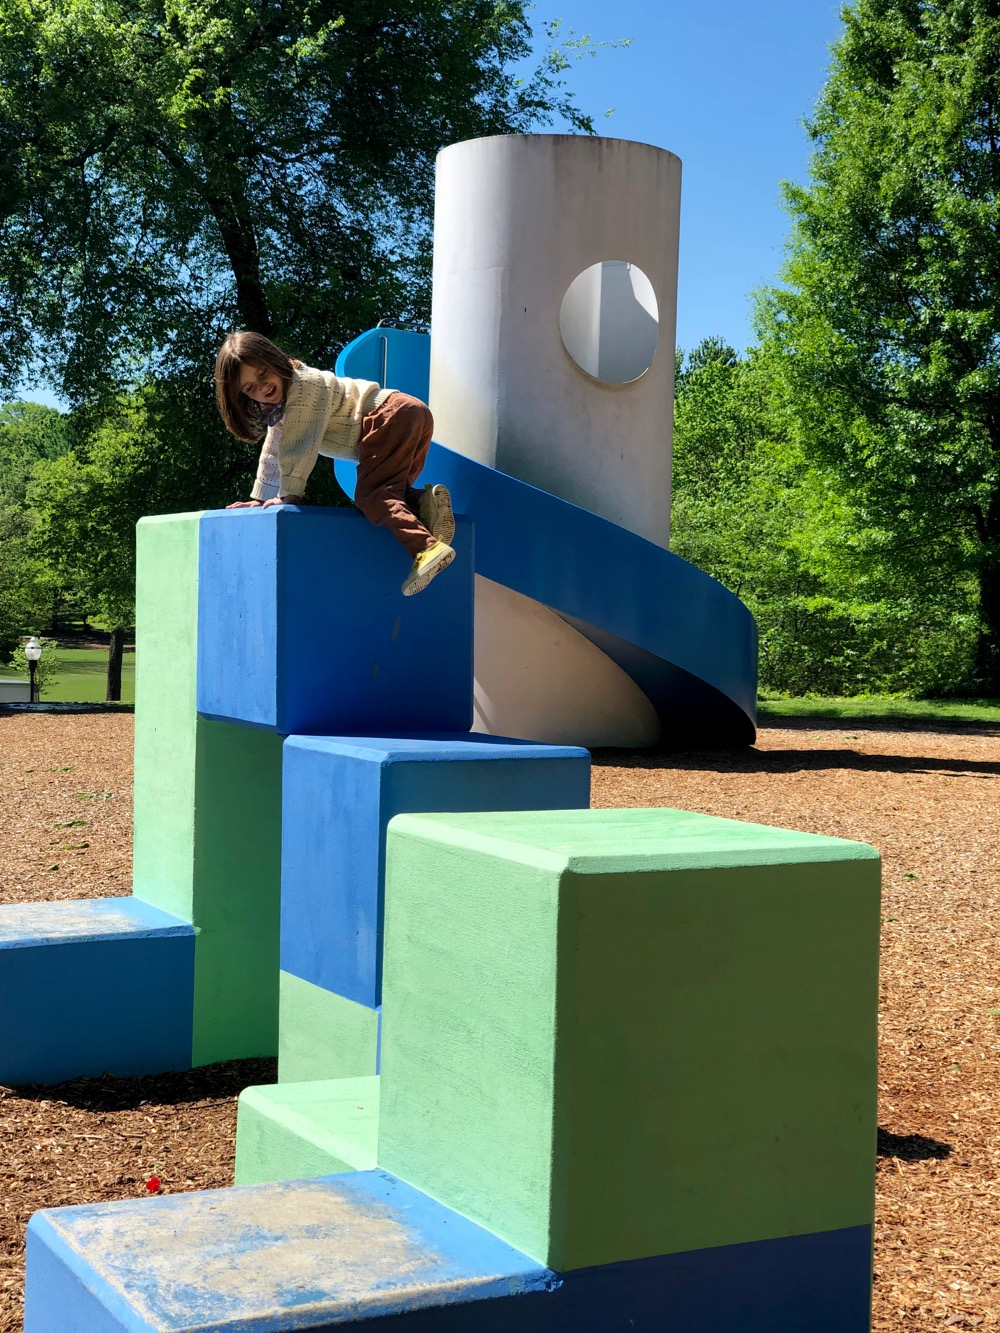 Climbing blocks at Noguchi's Playscapes